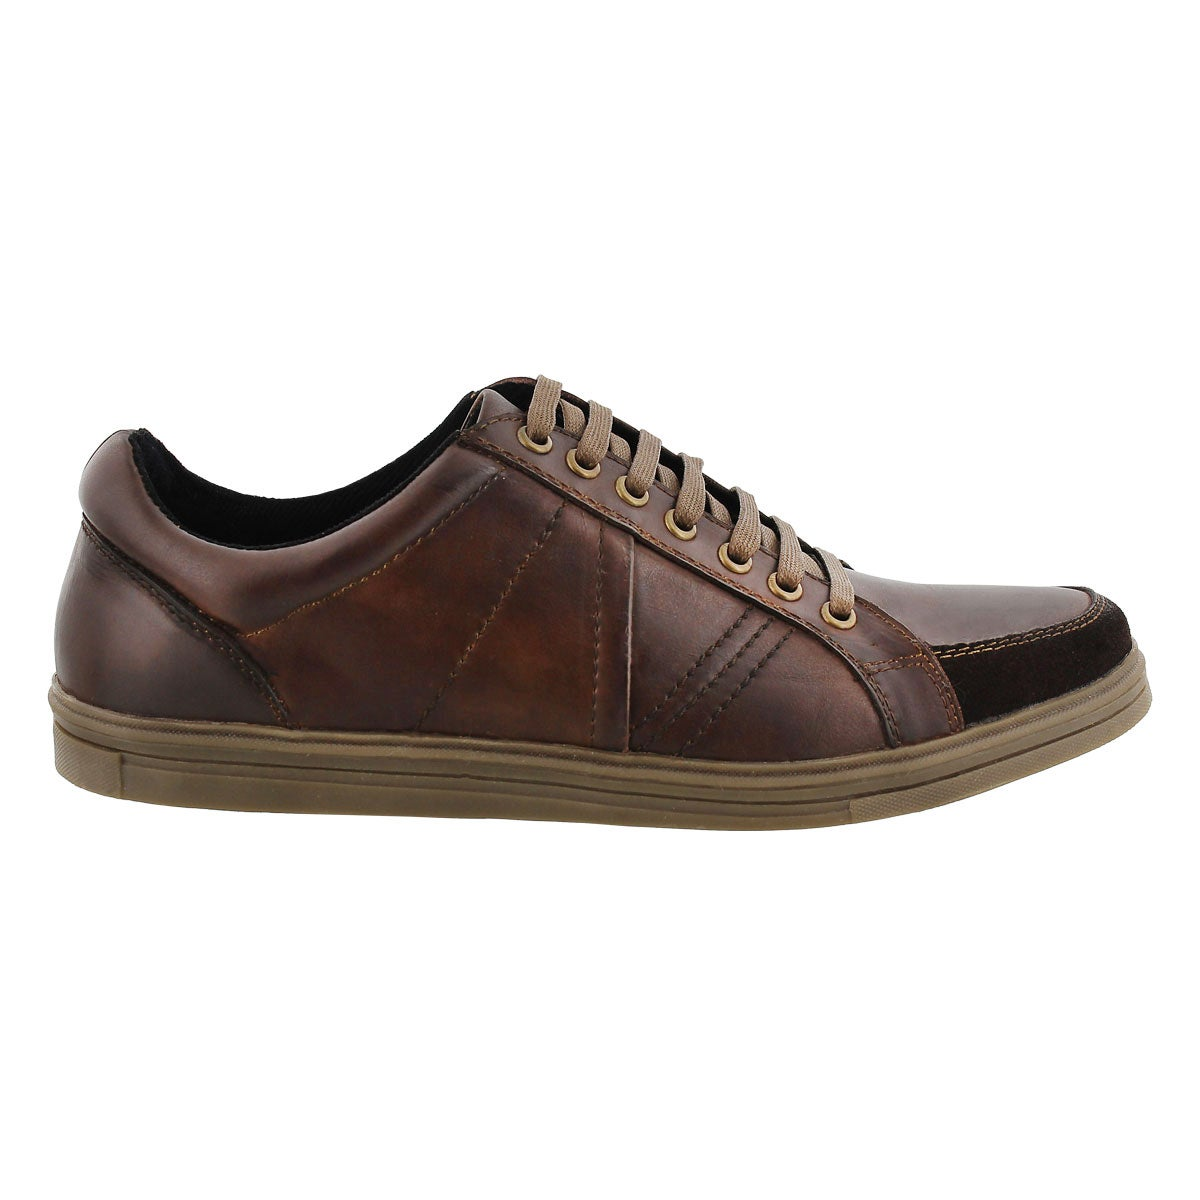 Mns Vagabond brown leather sneaker